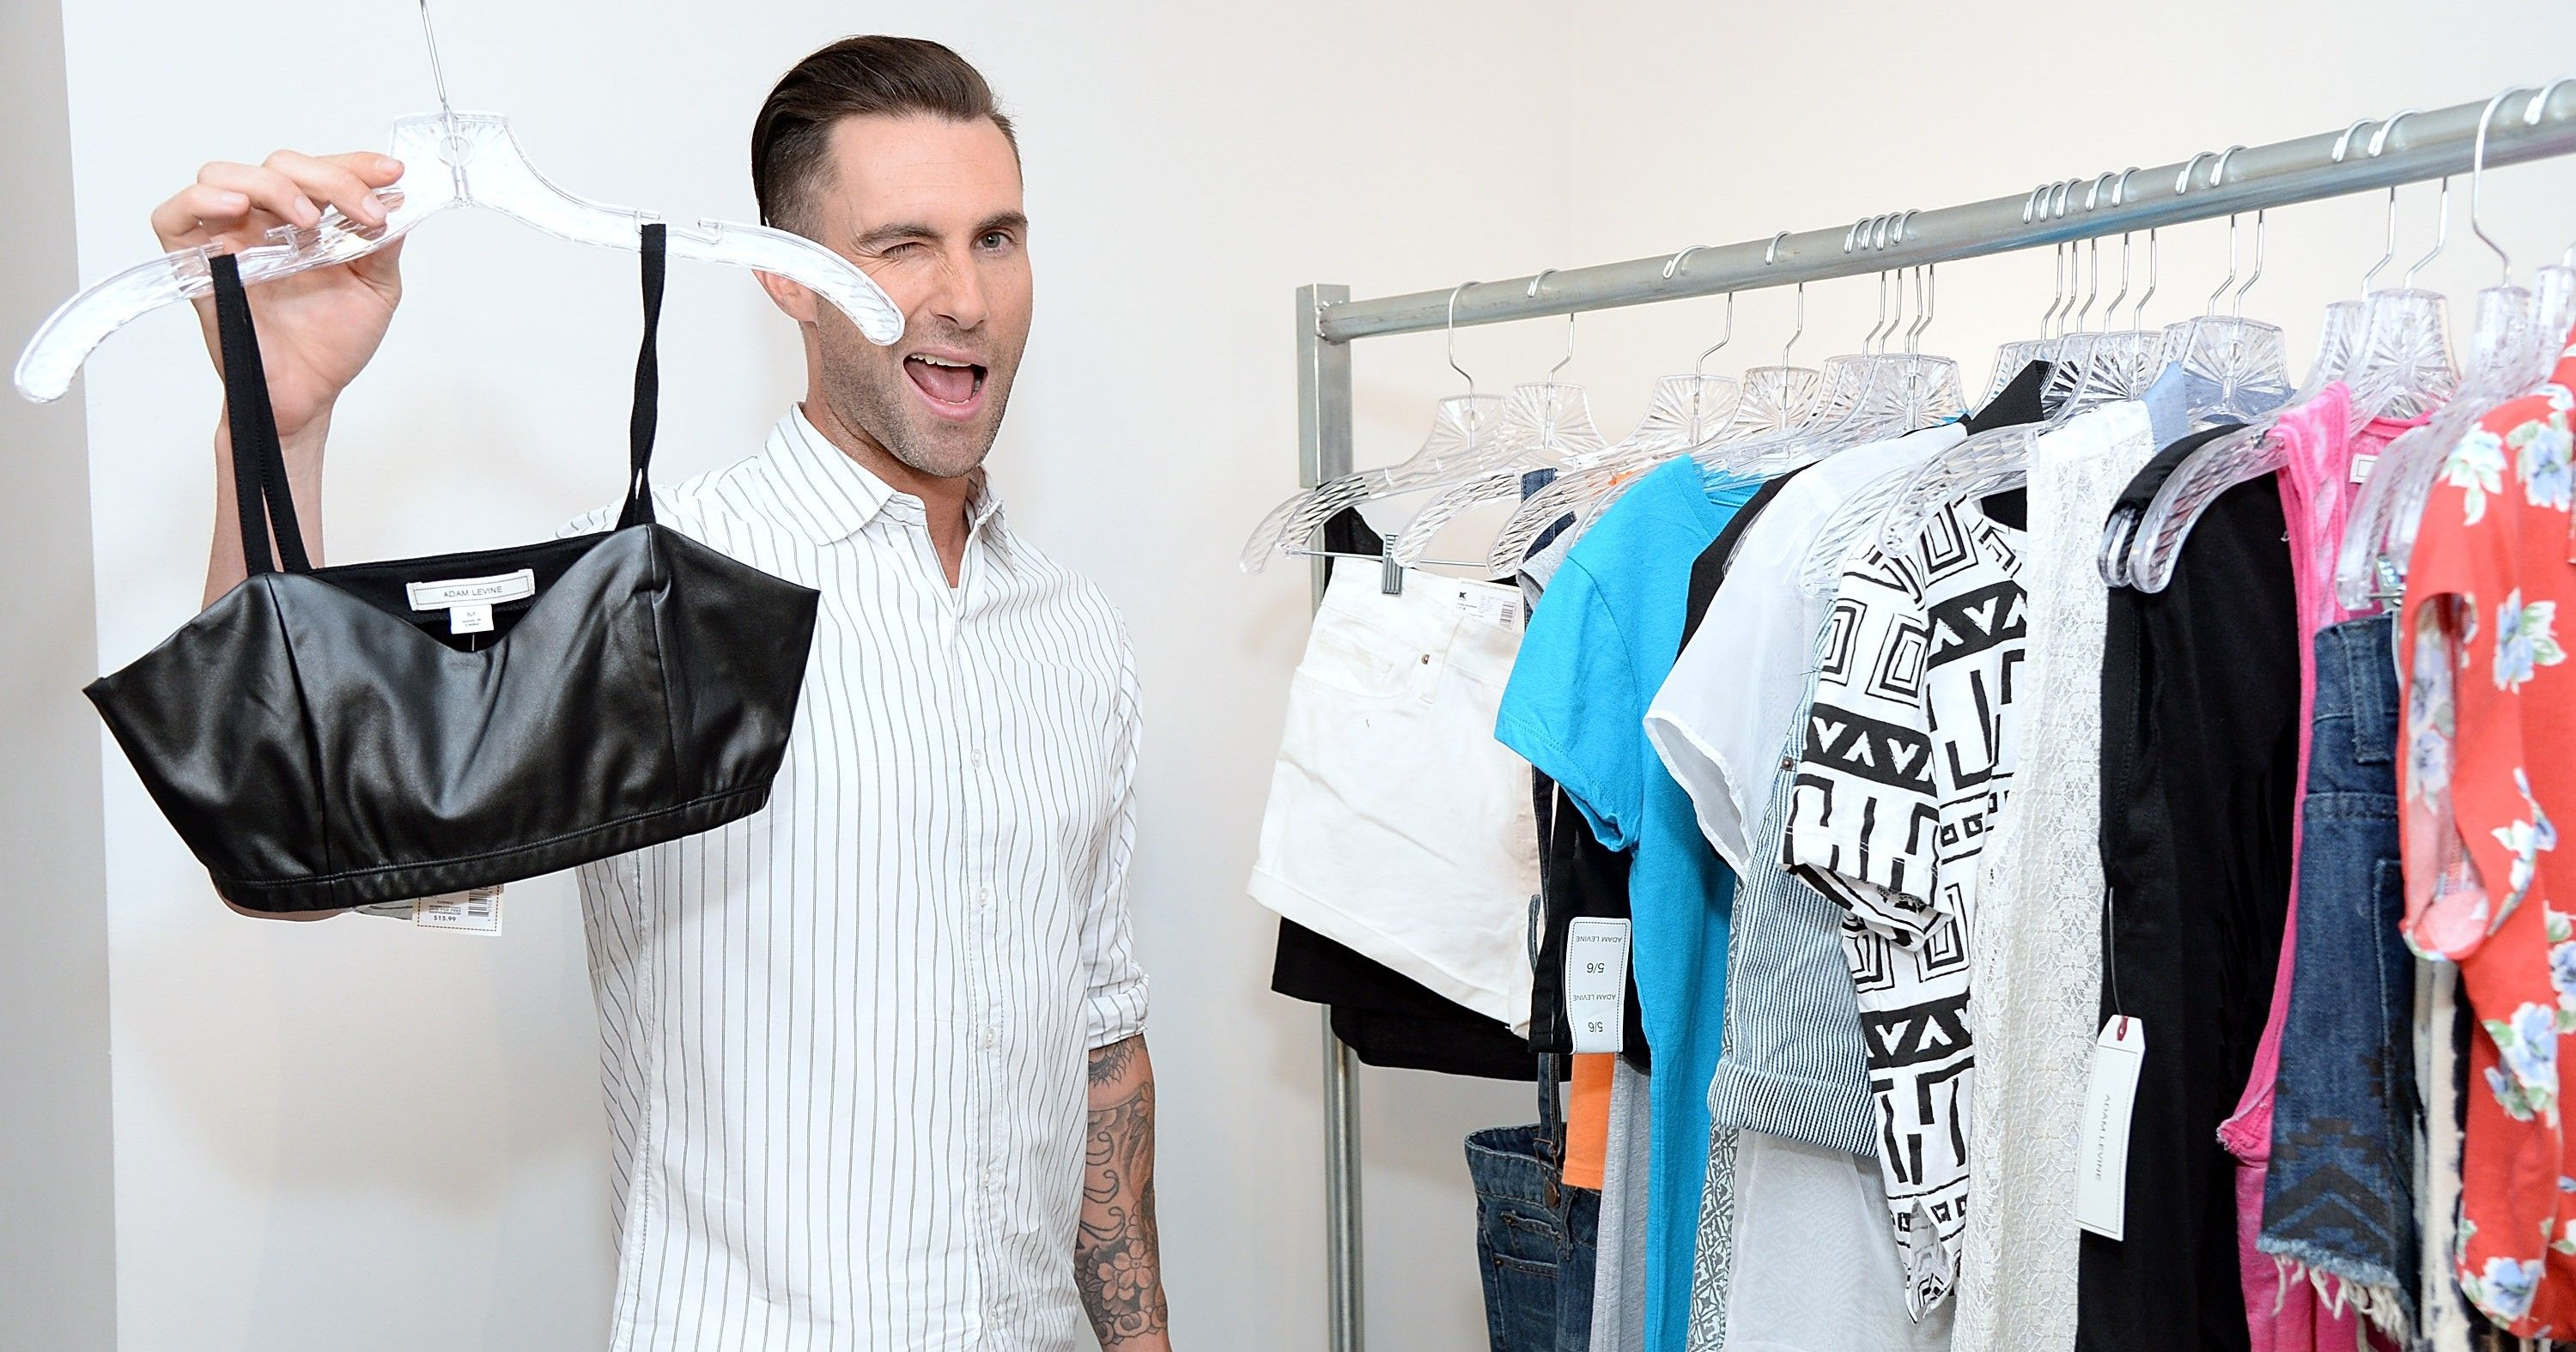 10 Of The Most Successful Celebrity Clothing Designers